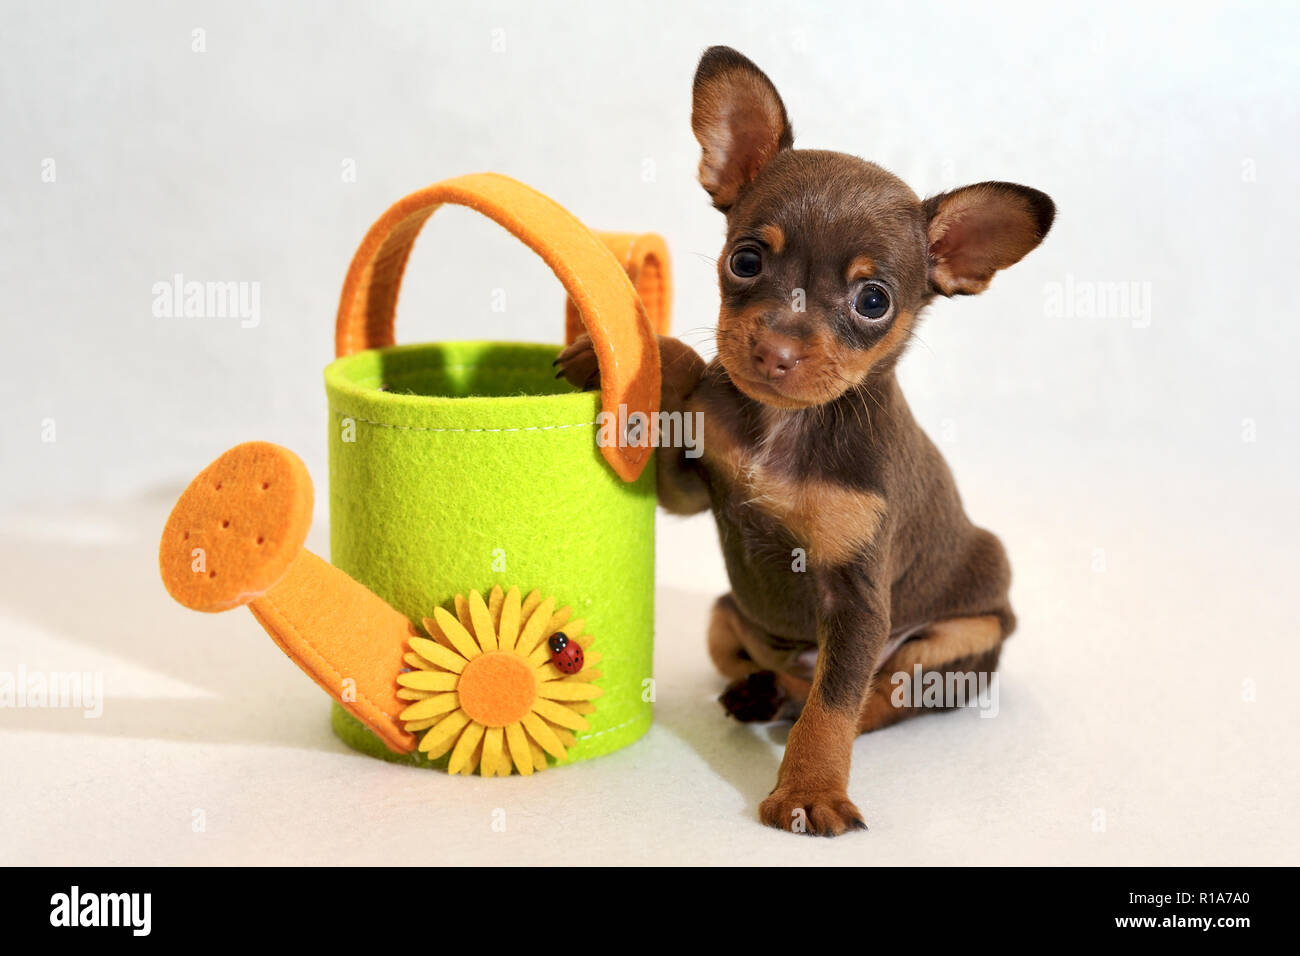 Russkiy toy terrier puppy with watering-can - Stock Image